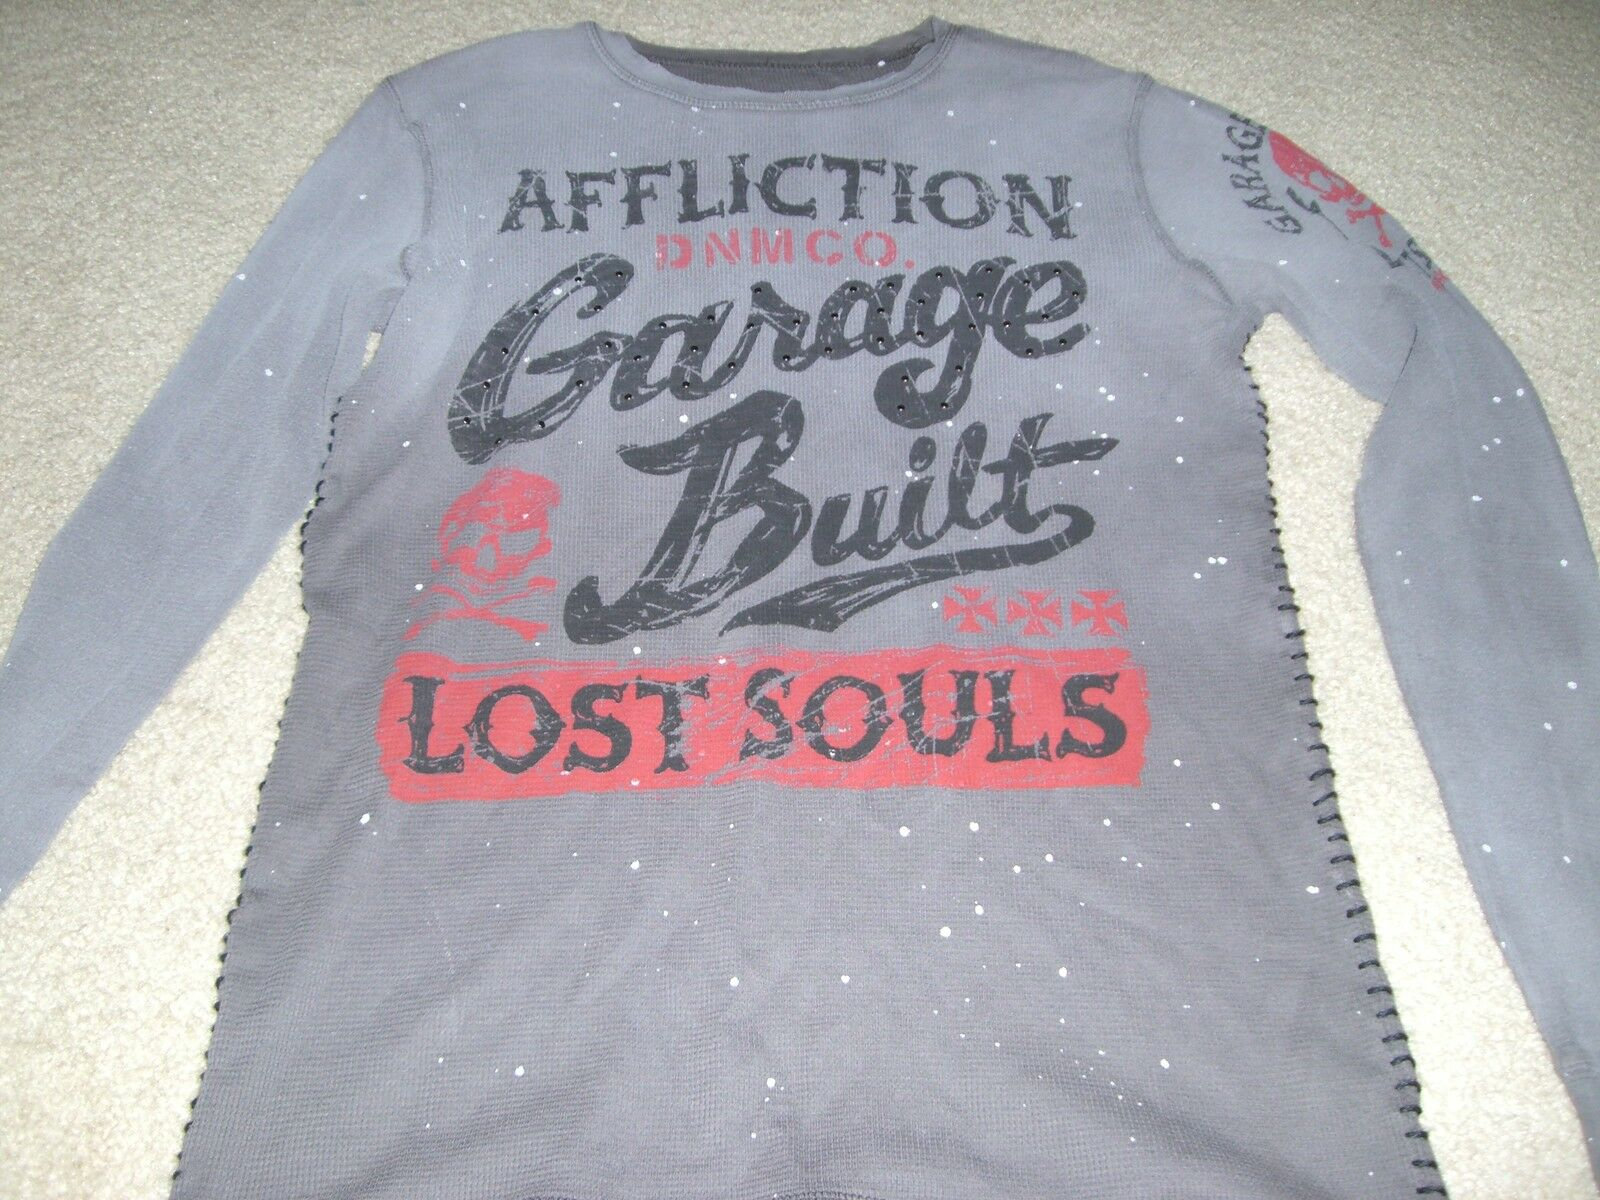 AFFLICTION MENS GARAGE BUILT LOST SOULS THERMAL SHIRT S